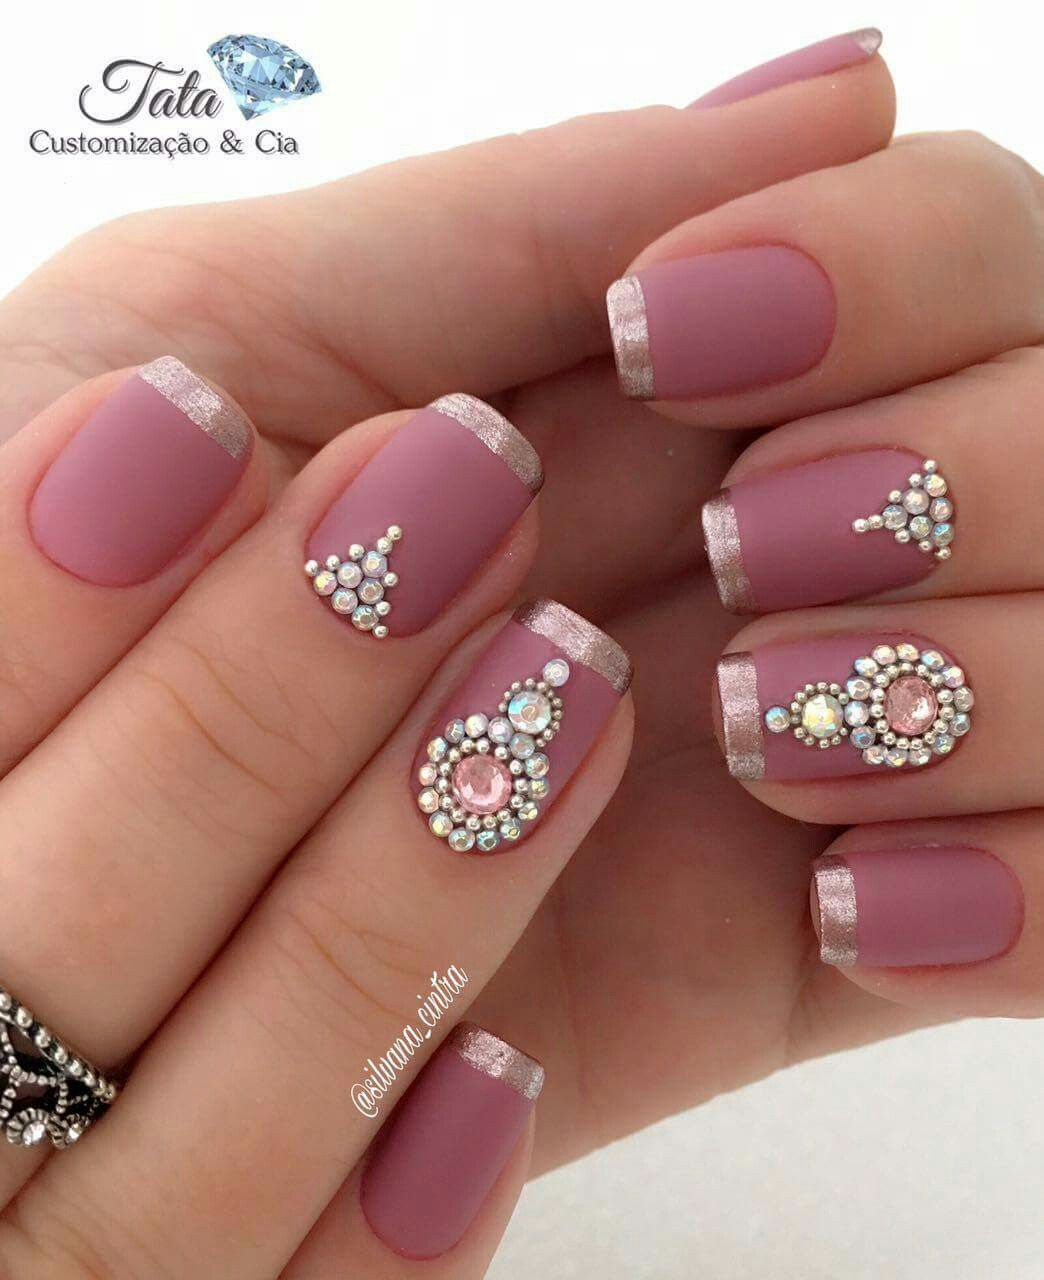 Pin by Bia Ebersol on unhas | Pinterest | Jewel, Manicure and Pedicures